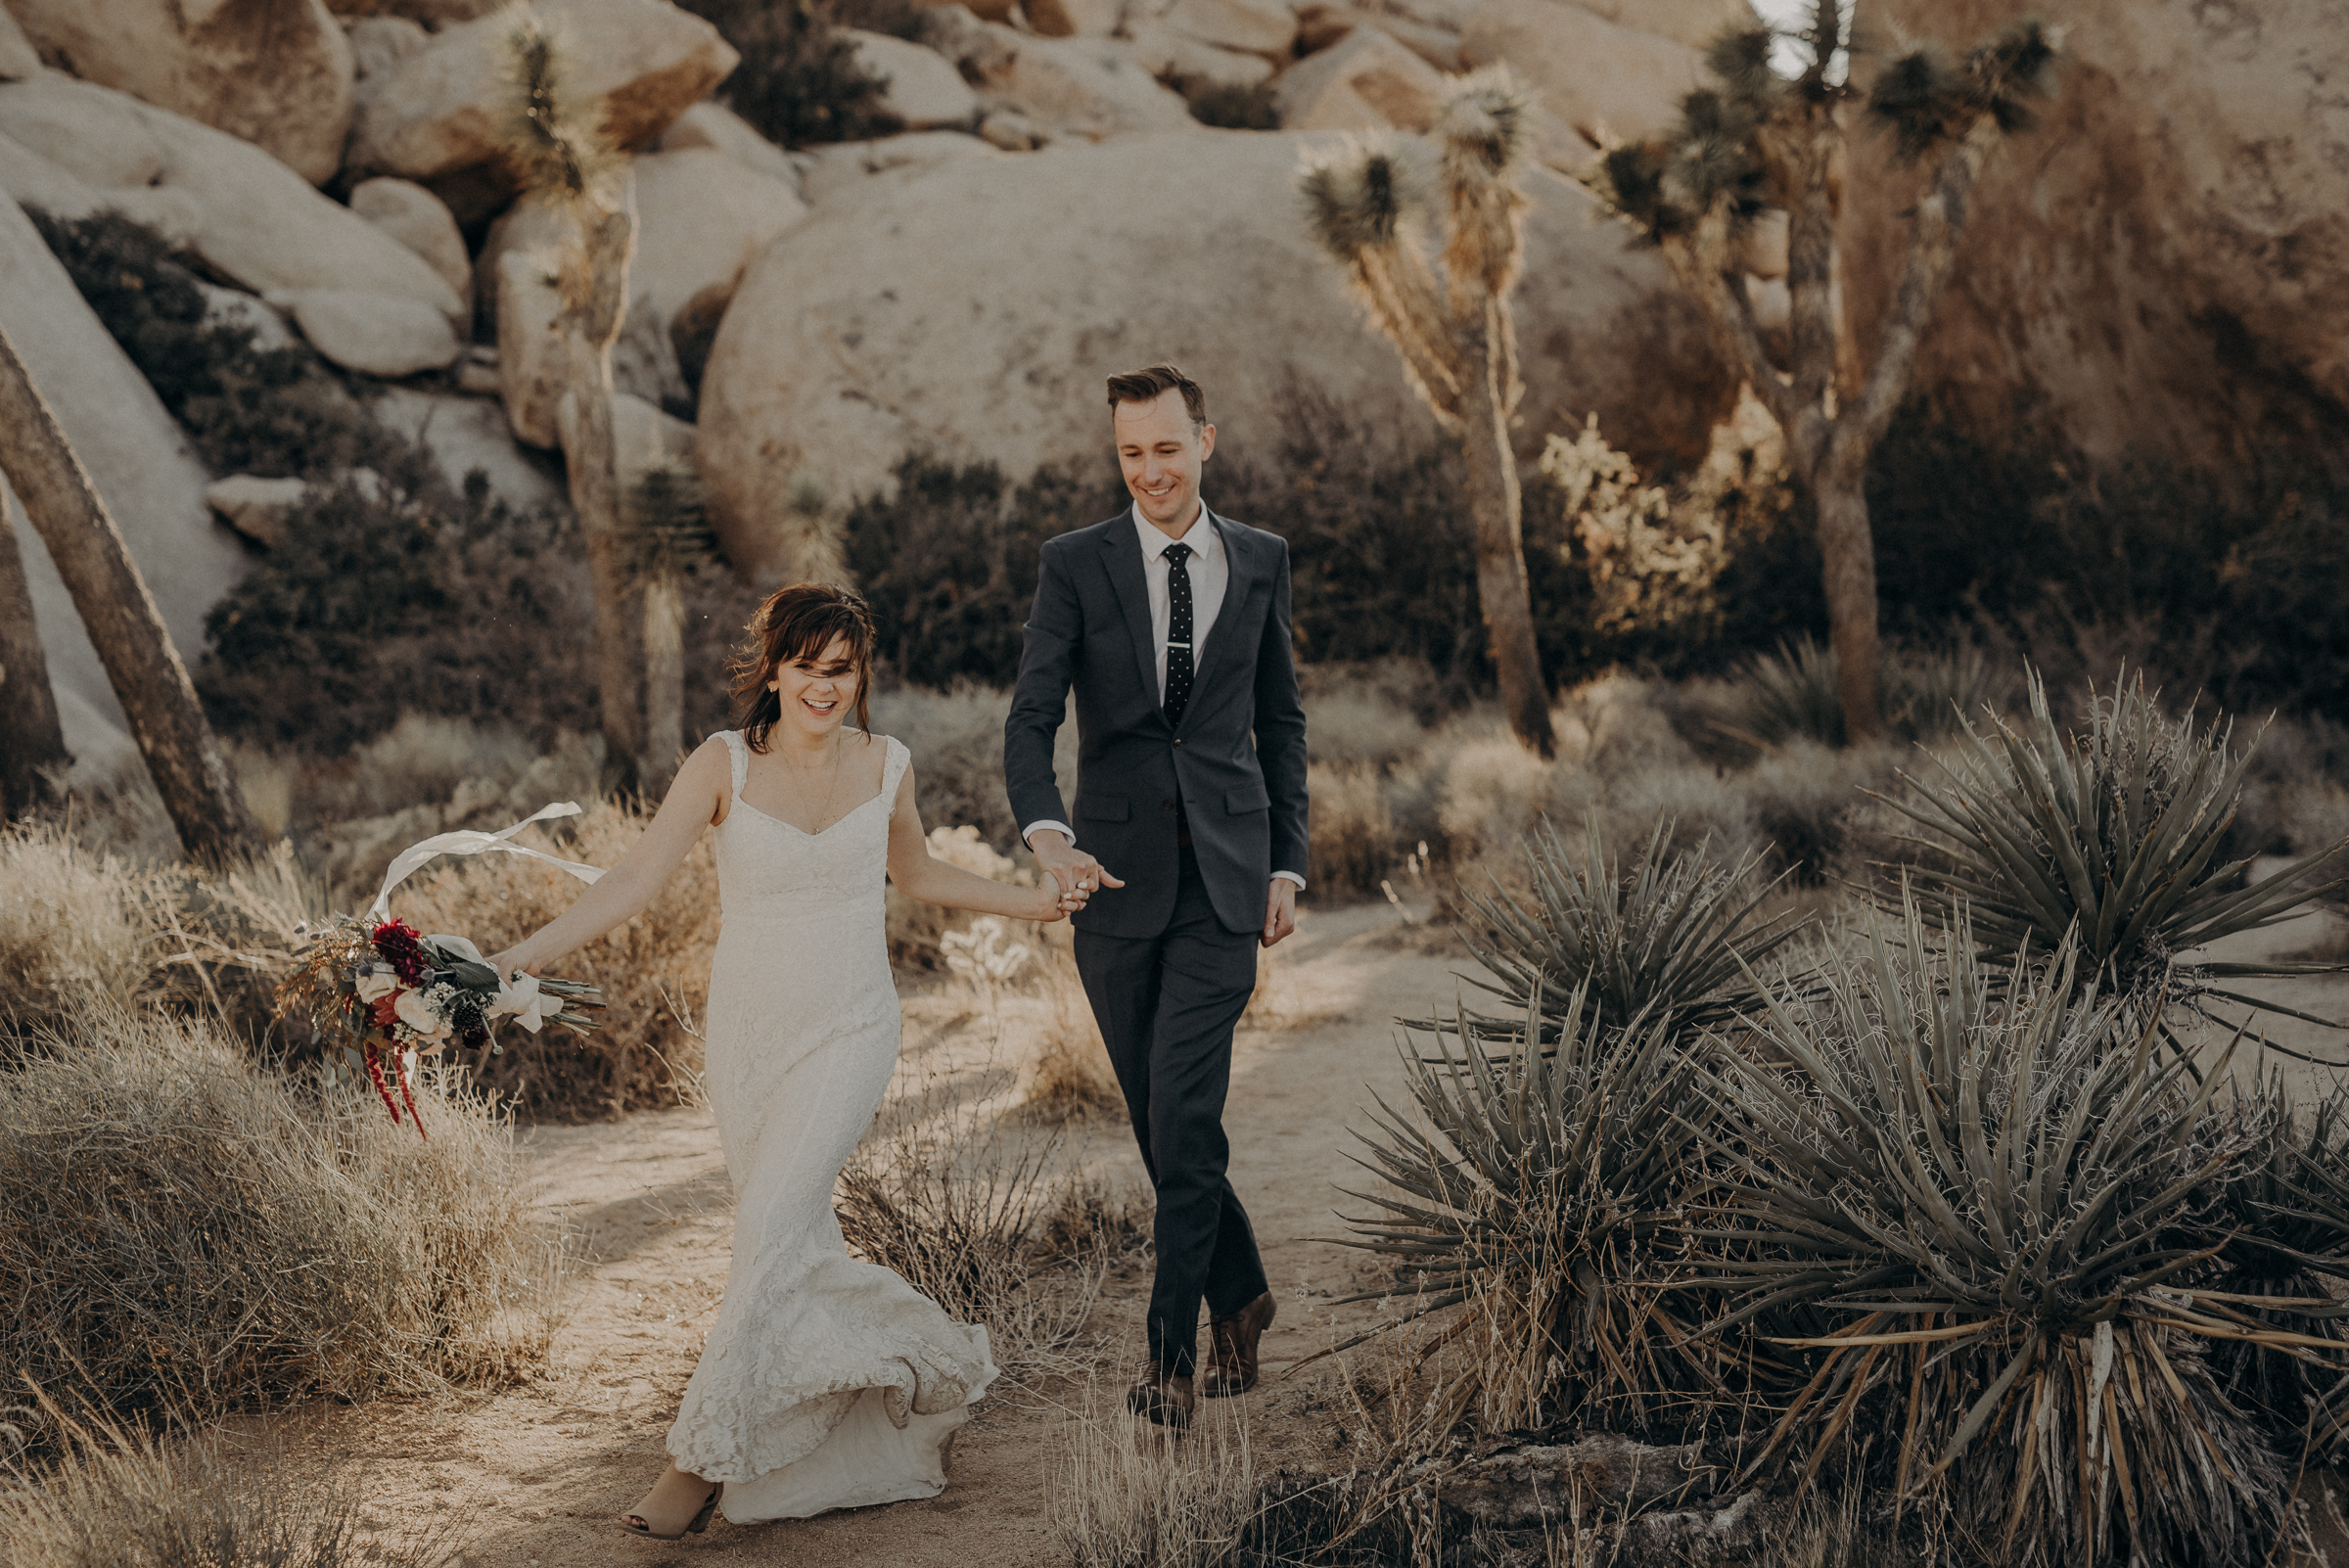 Joshua Tree Elopement - Los Angeles Wedding Photographers - IsaiahAndTaylor.com-063.jpg